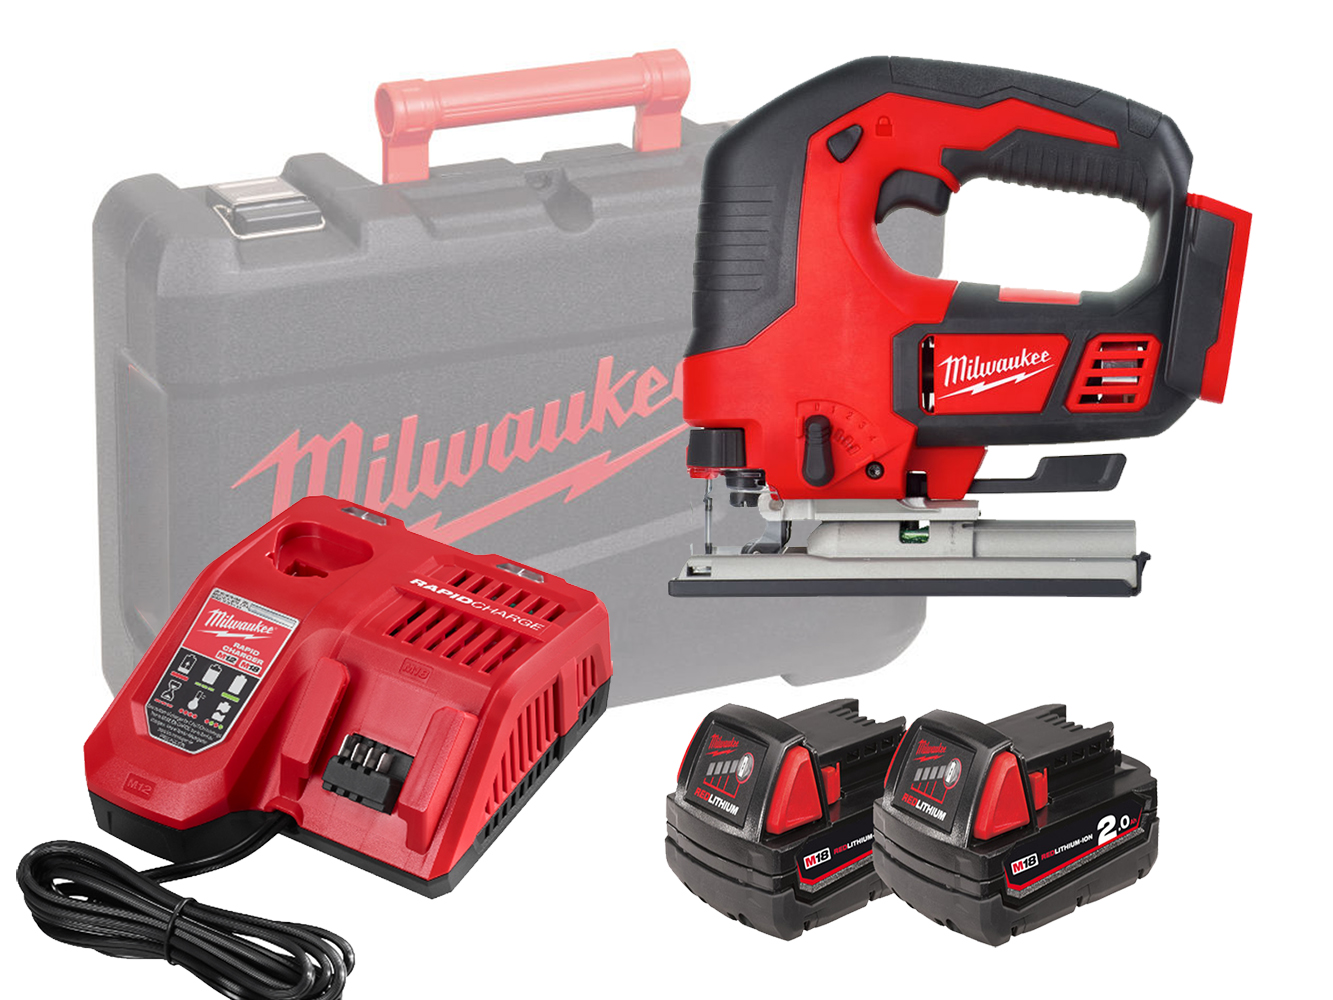 MILWAUKEE 18V HEAVY-DUTY TOP HANDLE JIGSAW - M18BJS - 2.0AH PACK